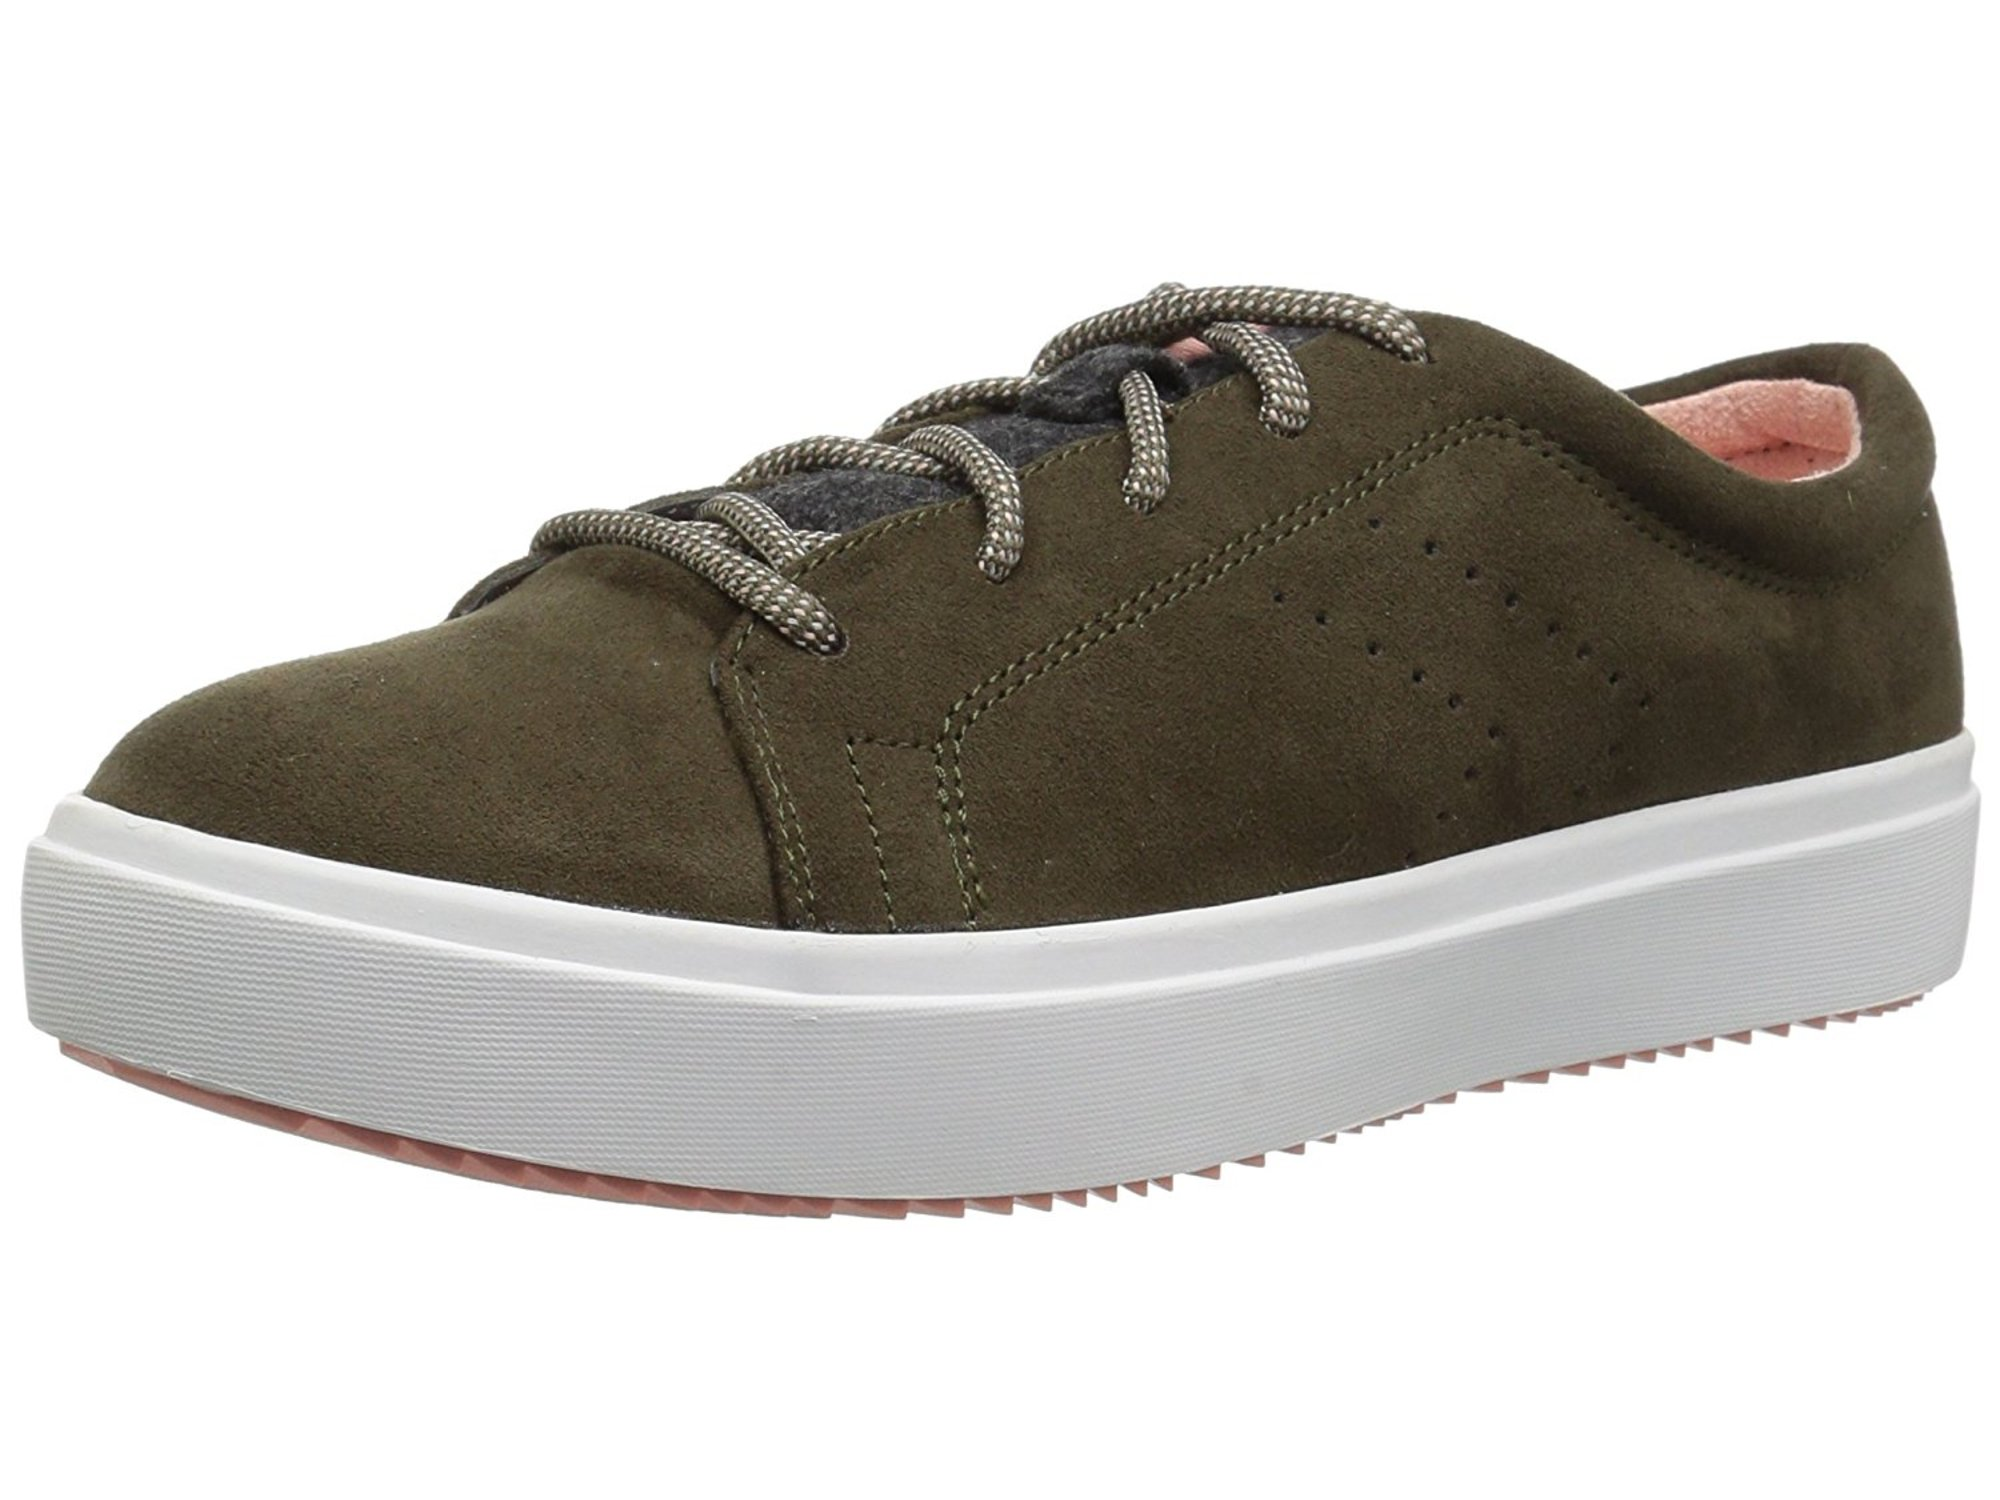 1032eb09798 Dr. Scholl s Shoes Women s Wander Lace Fashion Sneaker by Dr. Scholl s Shoes